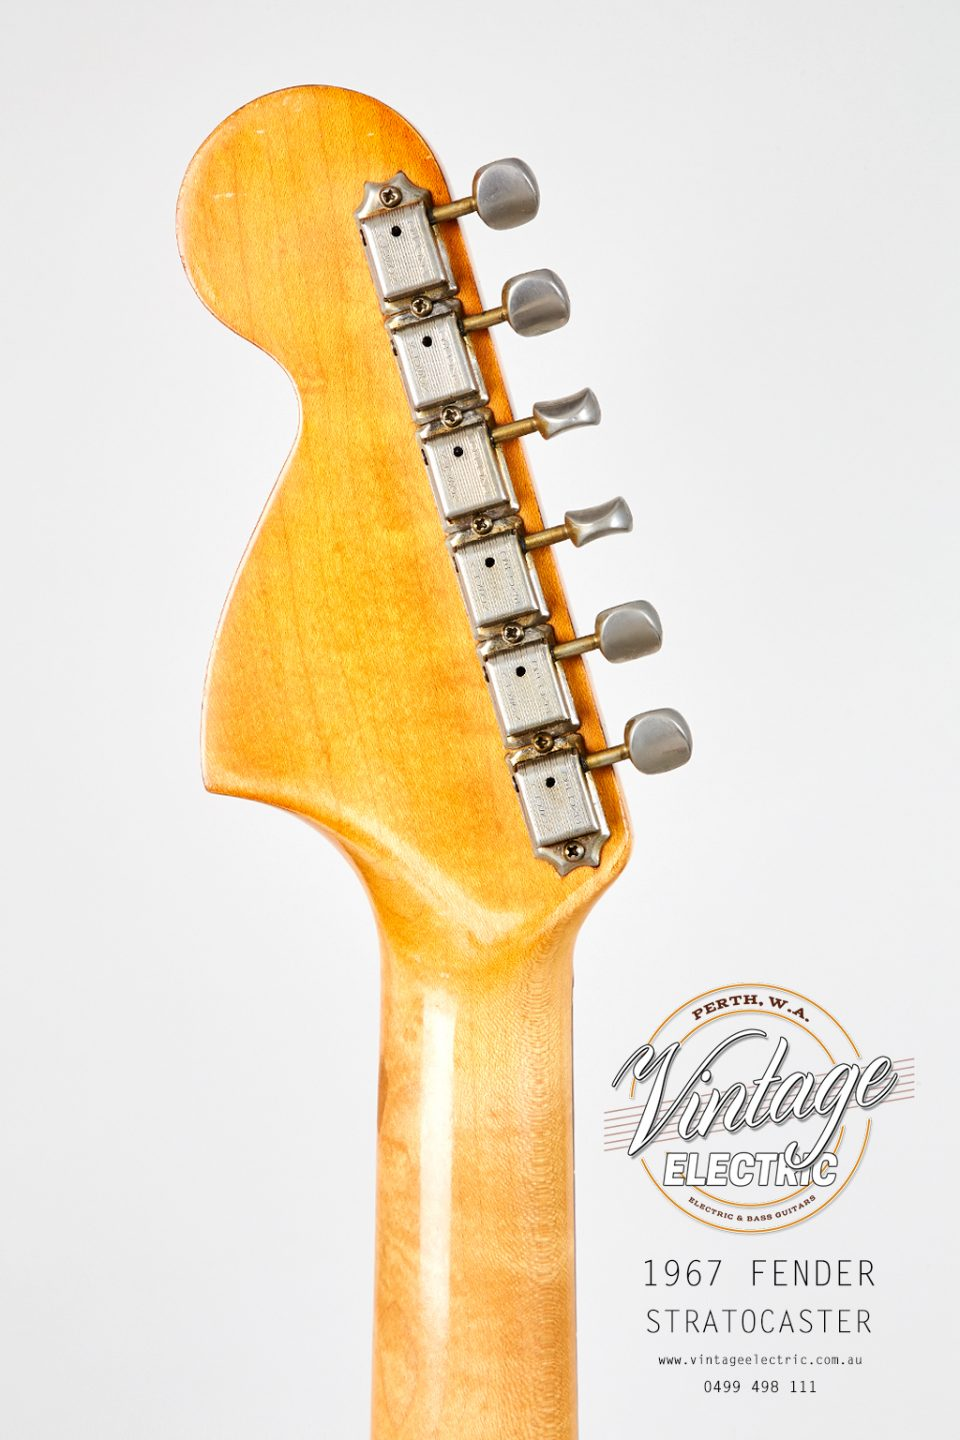 1967 Fender Stratocaster US Back of Headstock